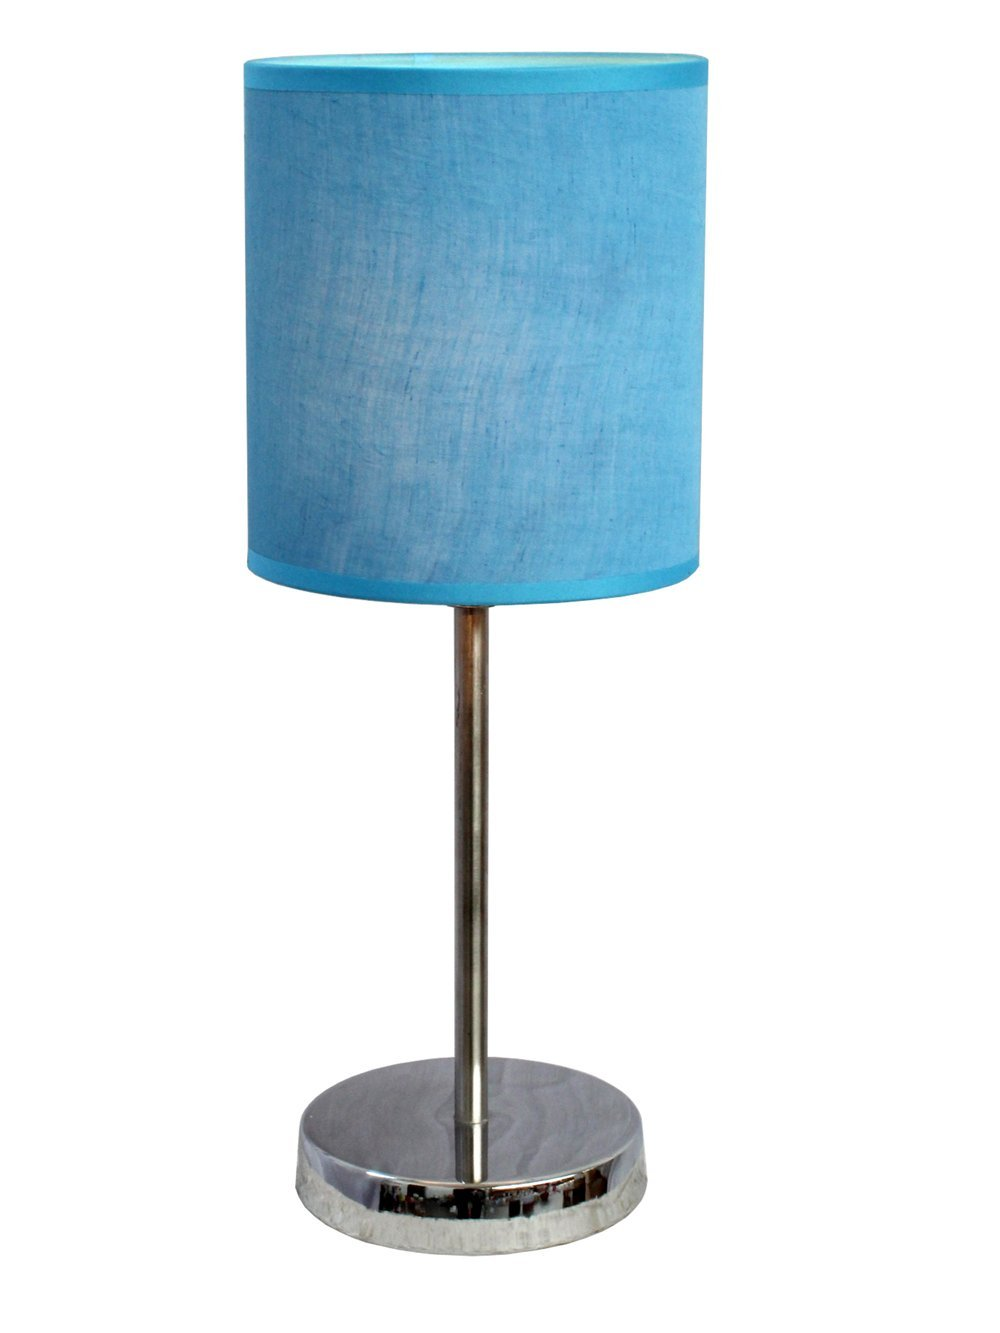 Simple Designs Home LT2007-BLU Mini Basic Table Lamp Blue